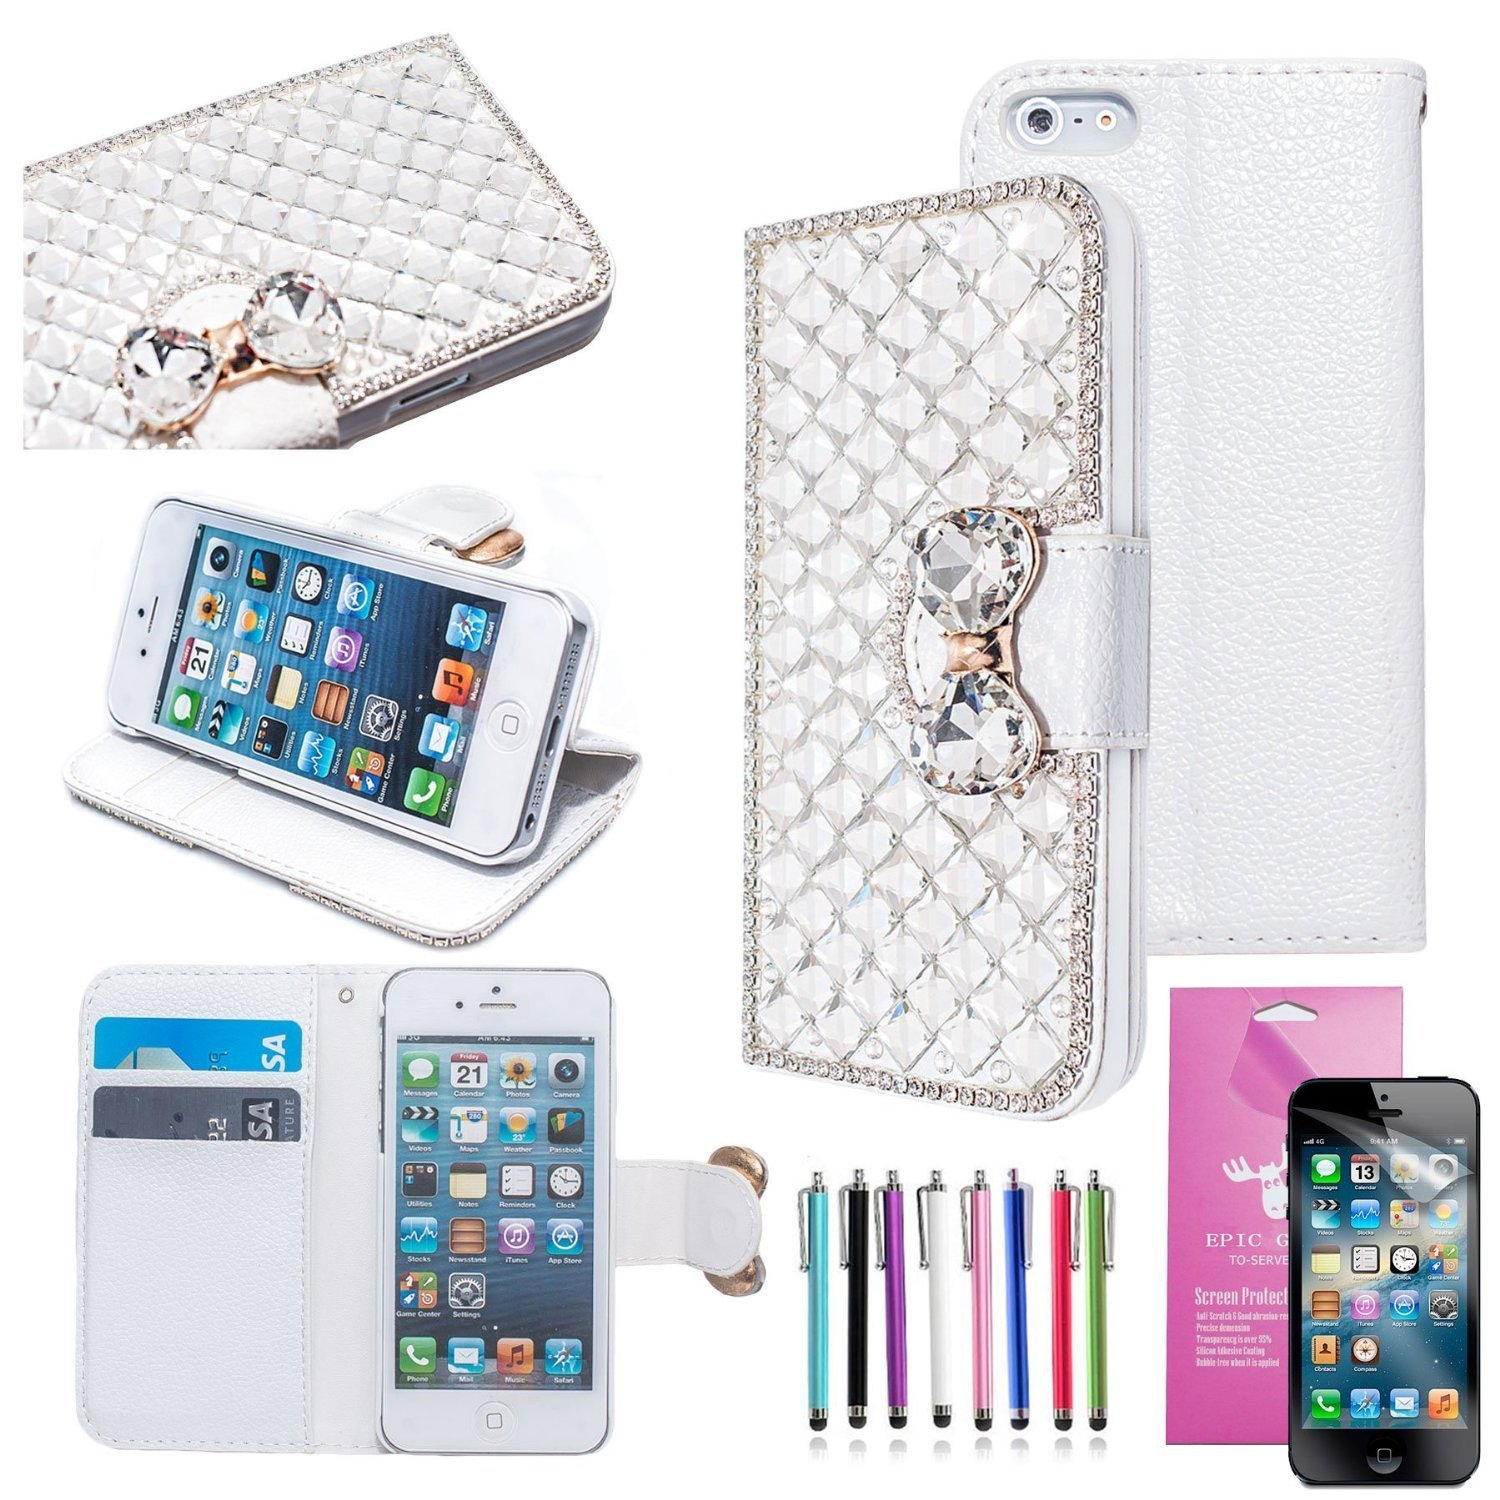 EpicGadget(TM) For Apple iPhone 5S and iPhone 5 Handmade Clear Crystal Luxury Bling Bling White PU Leather Case With Crystal Bow knot Wallet Case Magnaet Flip Cover With Credit Card Holder + iPhone 5 5S Screen Protector + 1 Stylus Pen (Random Color) (US Seller!!) (Silver Leather Case)